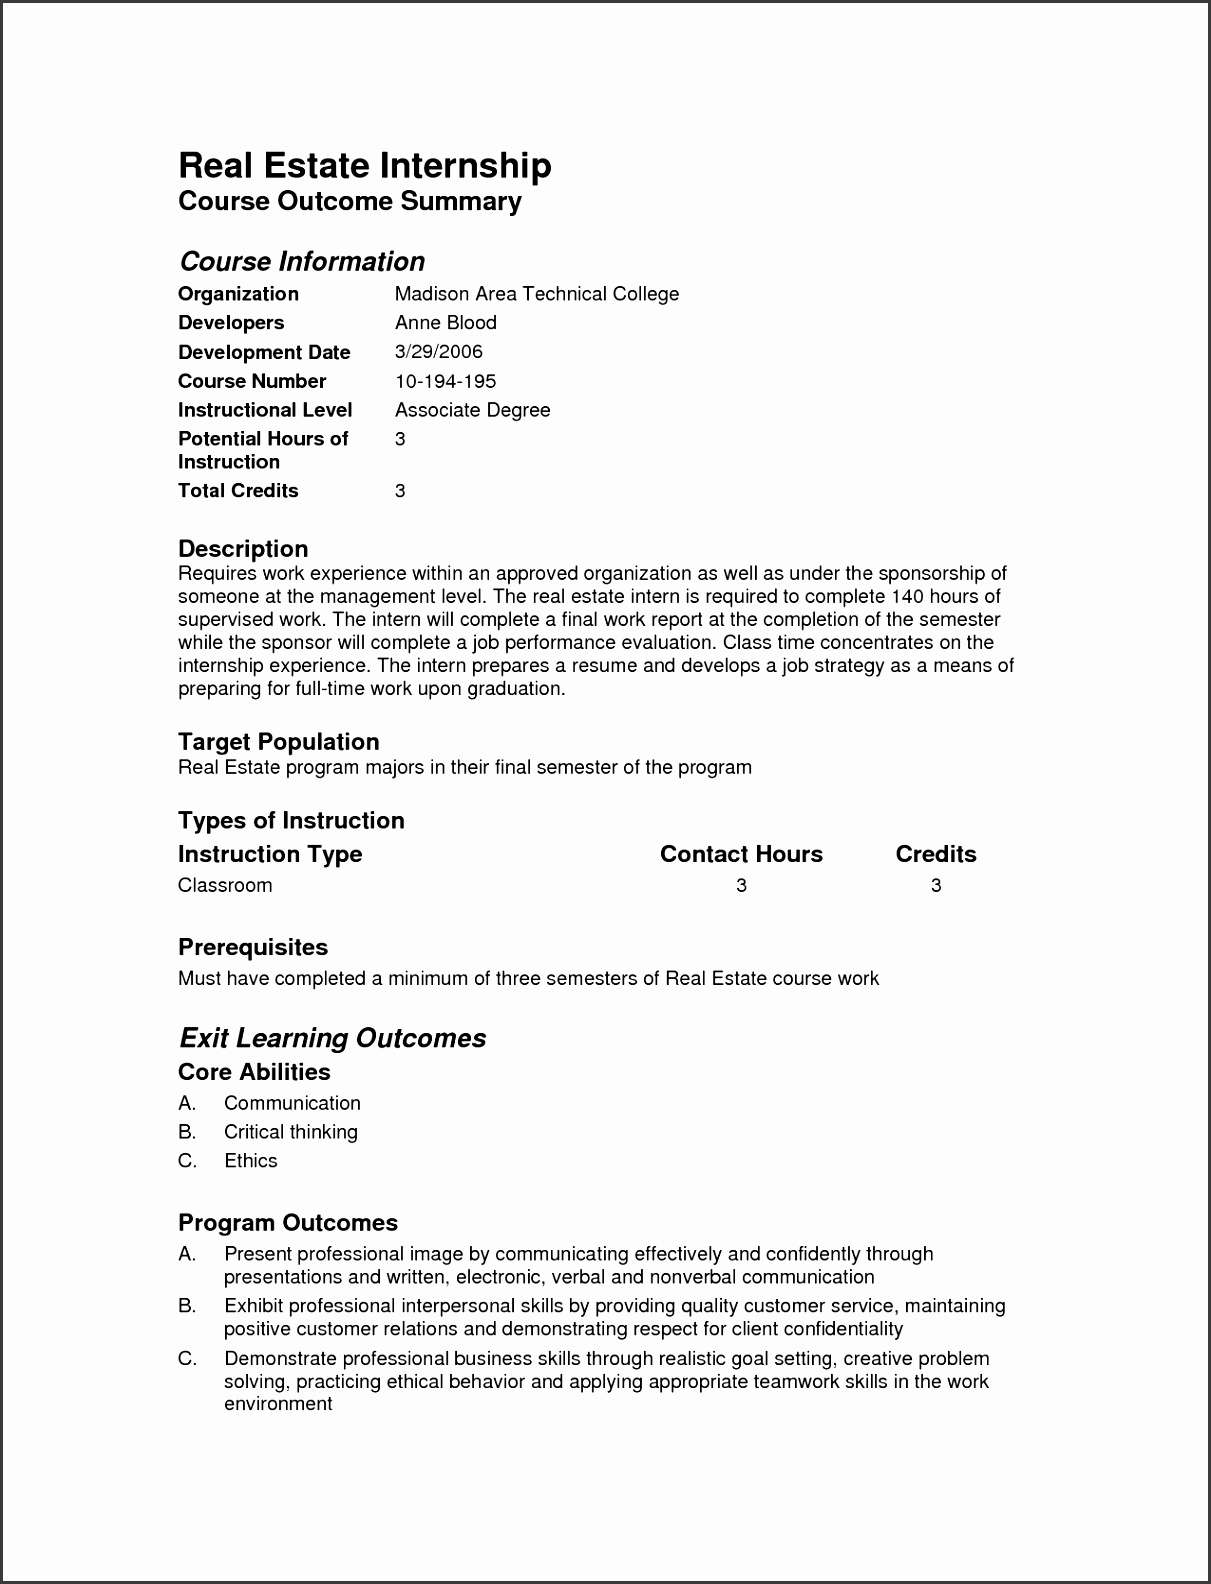 Example Business Plan Cover Letter Business Plan Cover Letter General